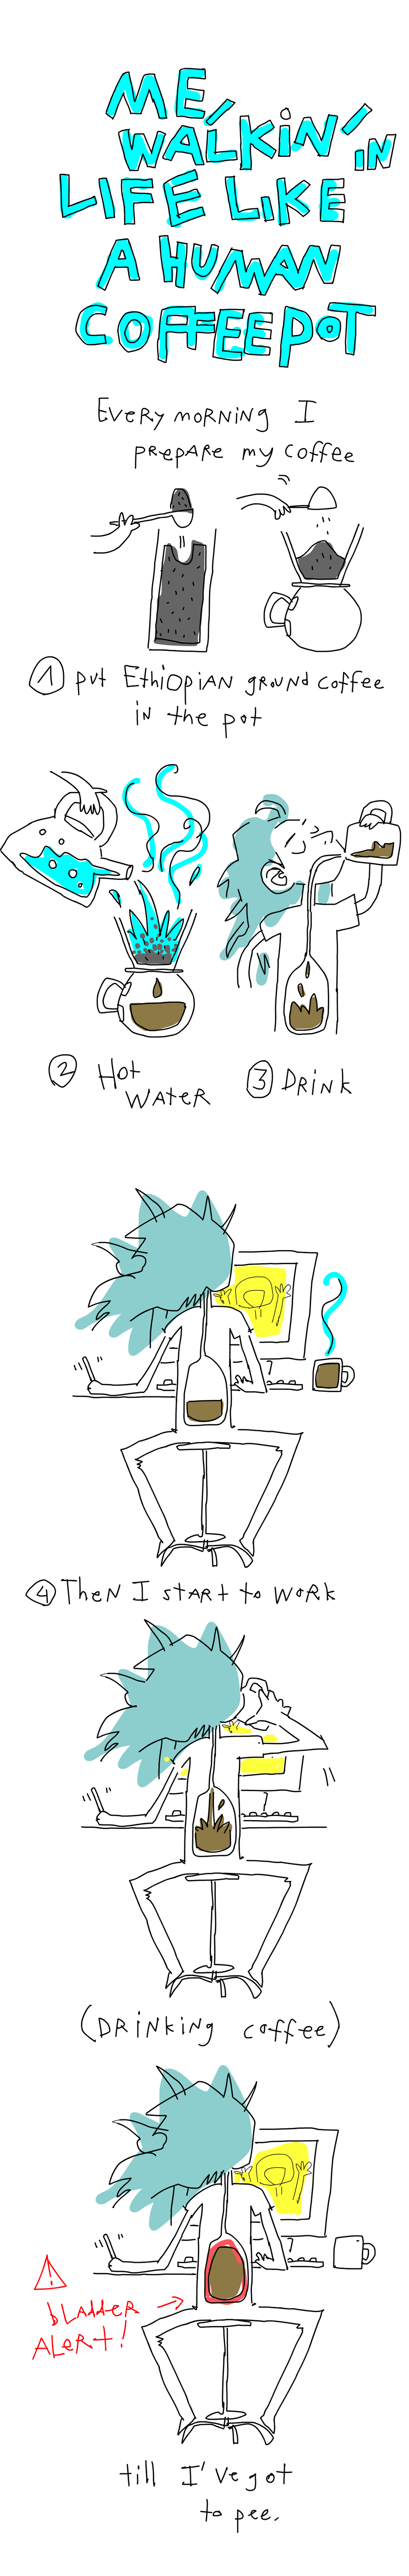 I'm a walking coffee pot. Every morning I prepare my coffee. I put Ethiopian coffee into the pot. Then pour hot water on it. Then drink. The, I start to work... while drinking coffee. Till I've got to pee.